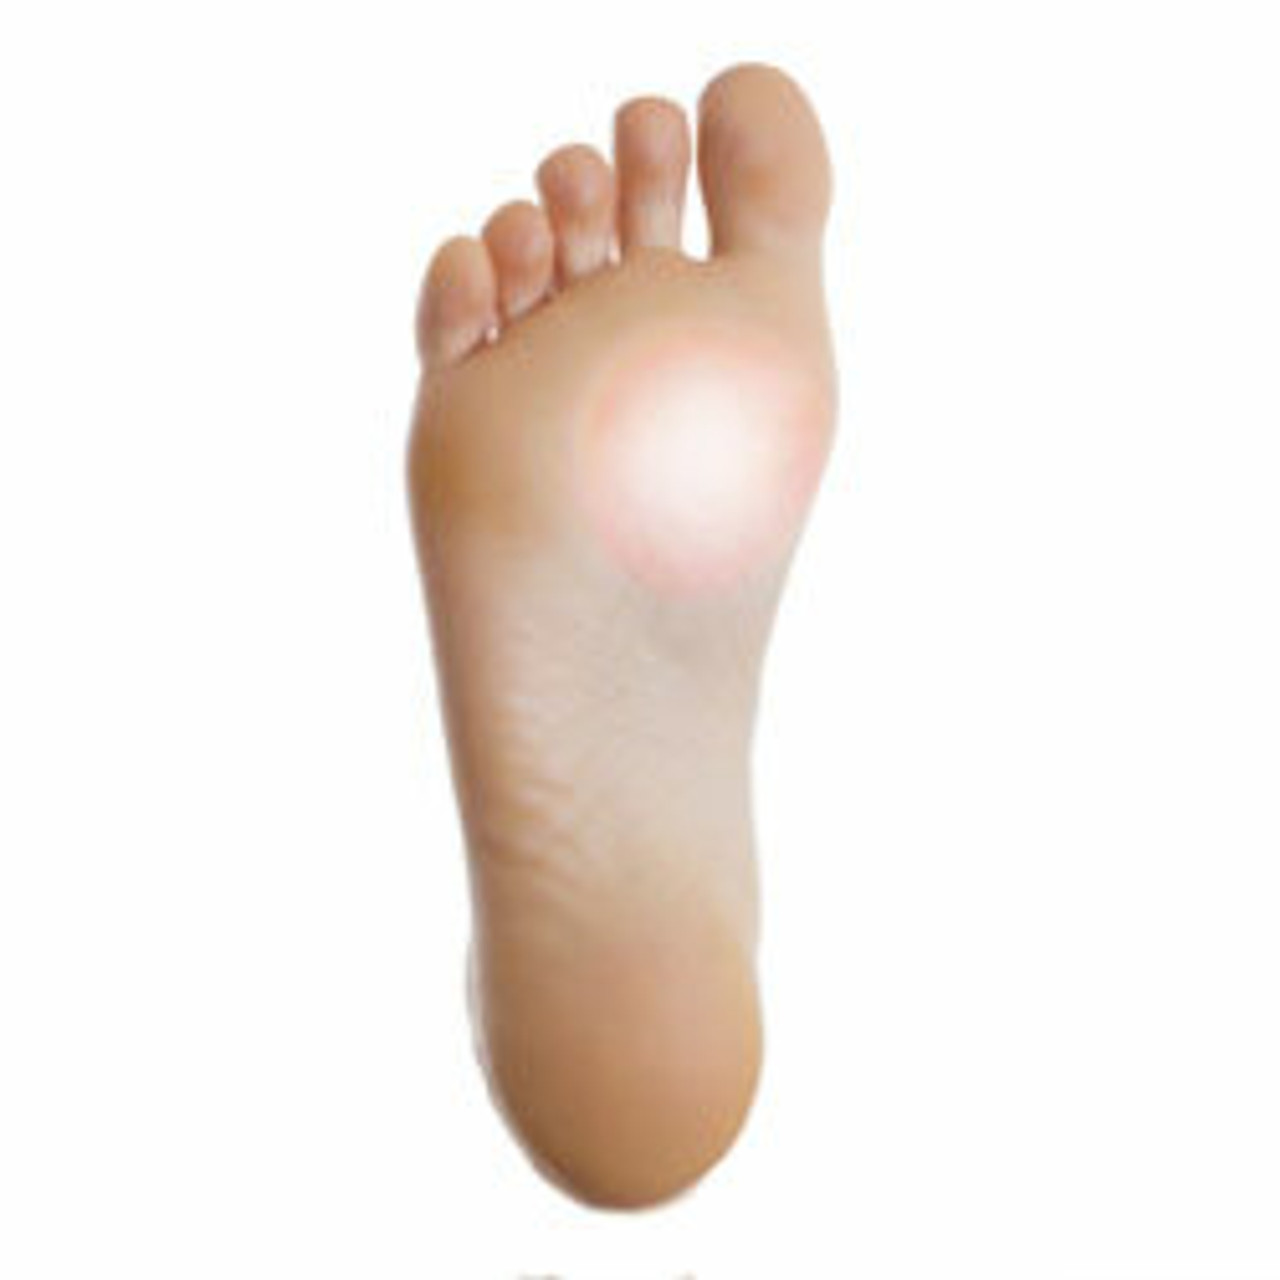 Blister Foot Care Products | Foot Blister Relief